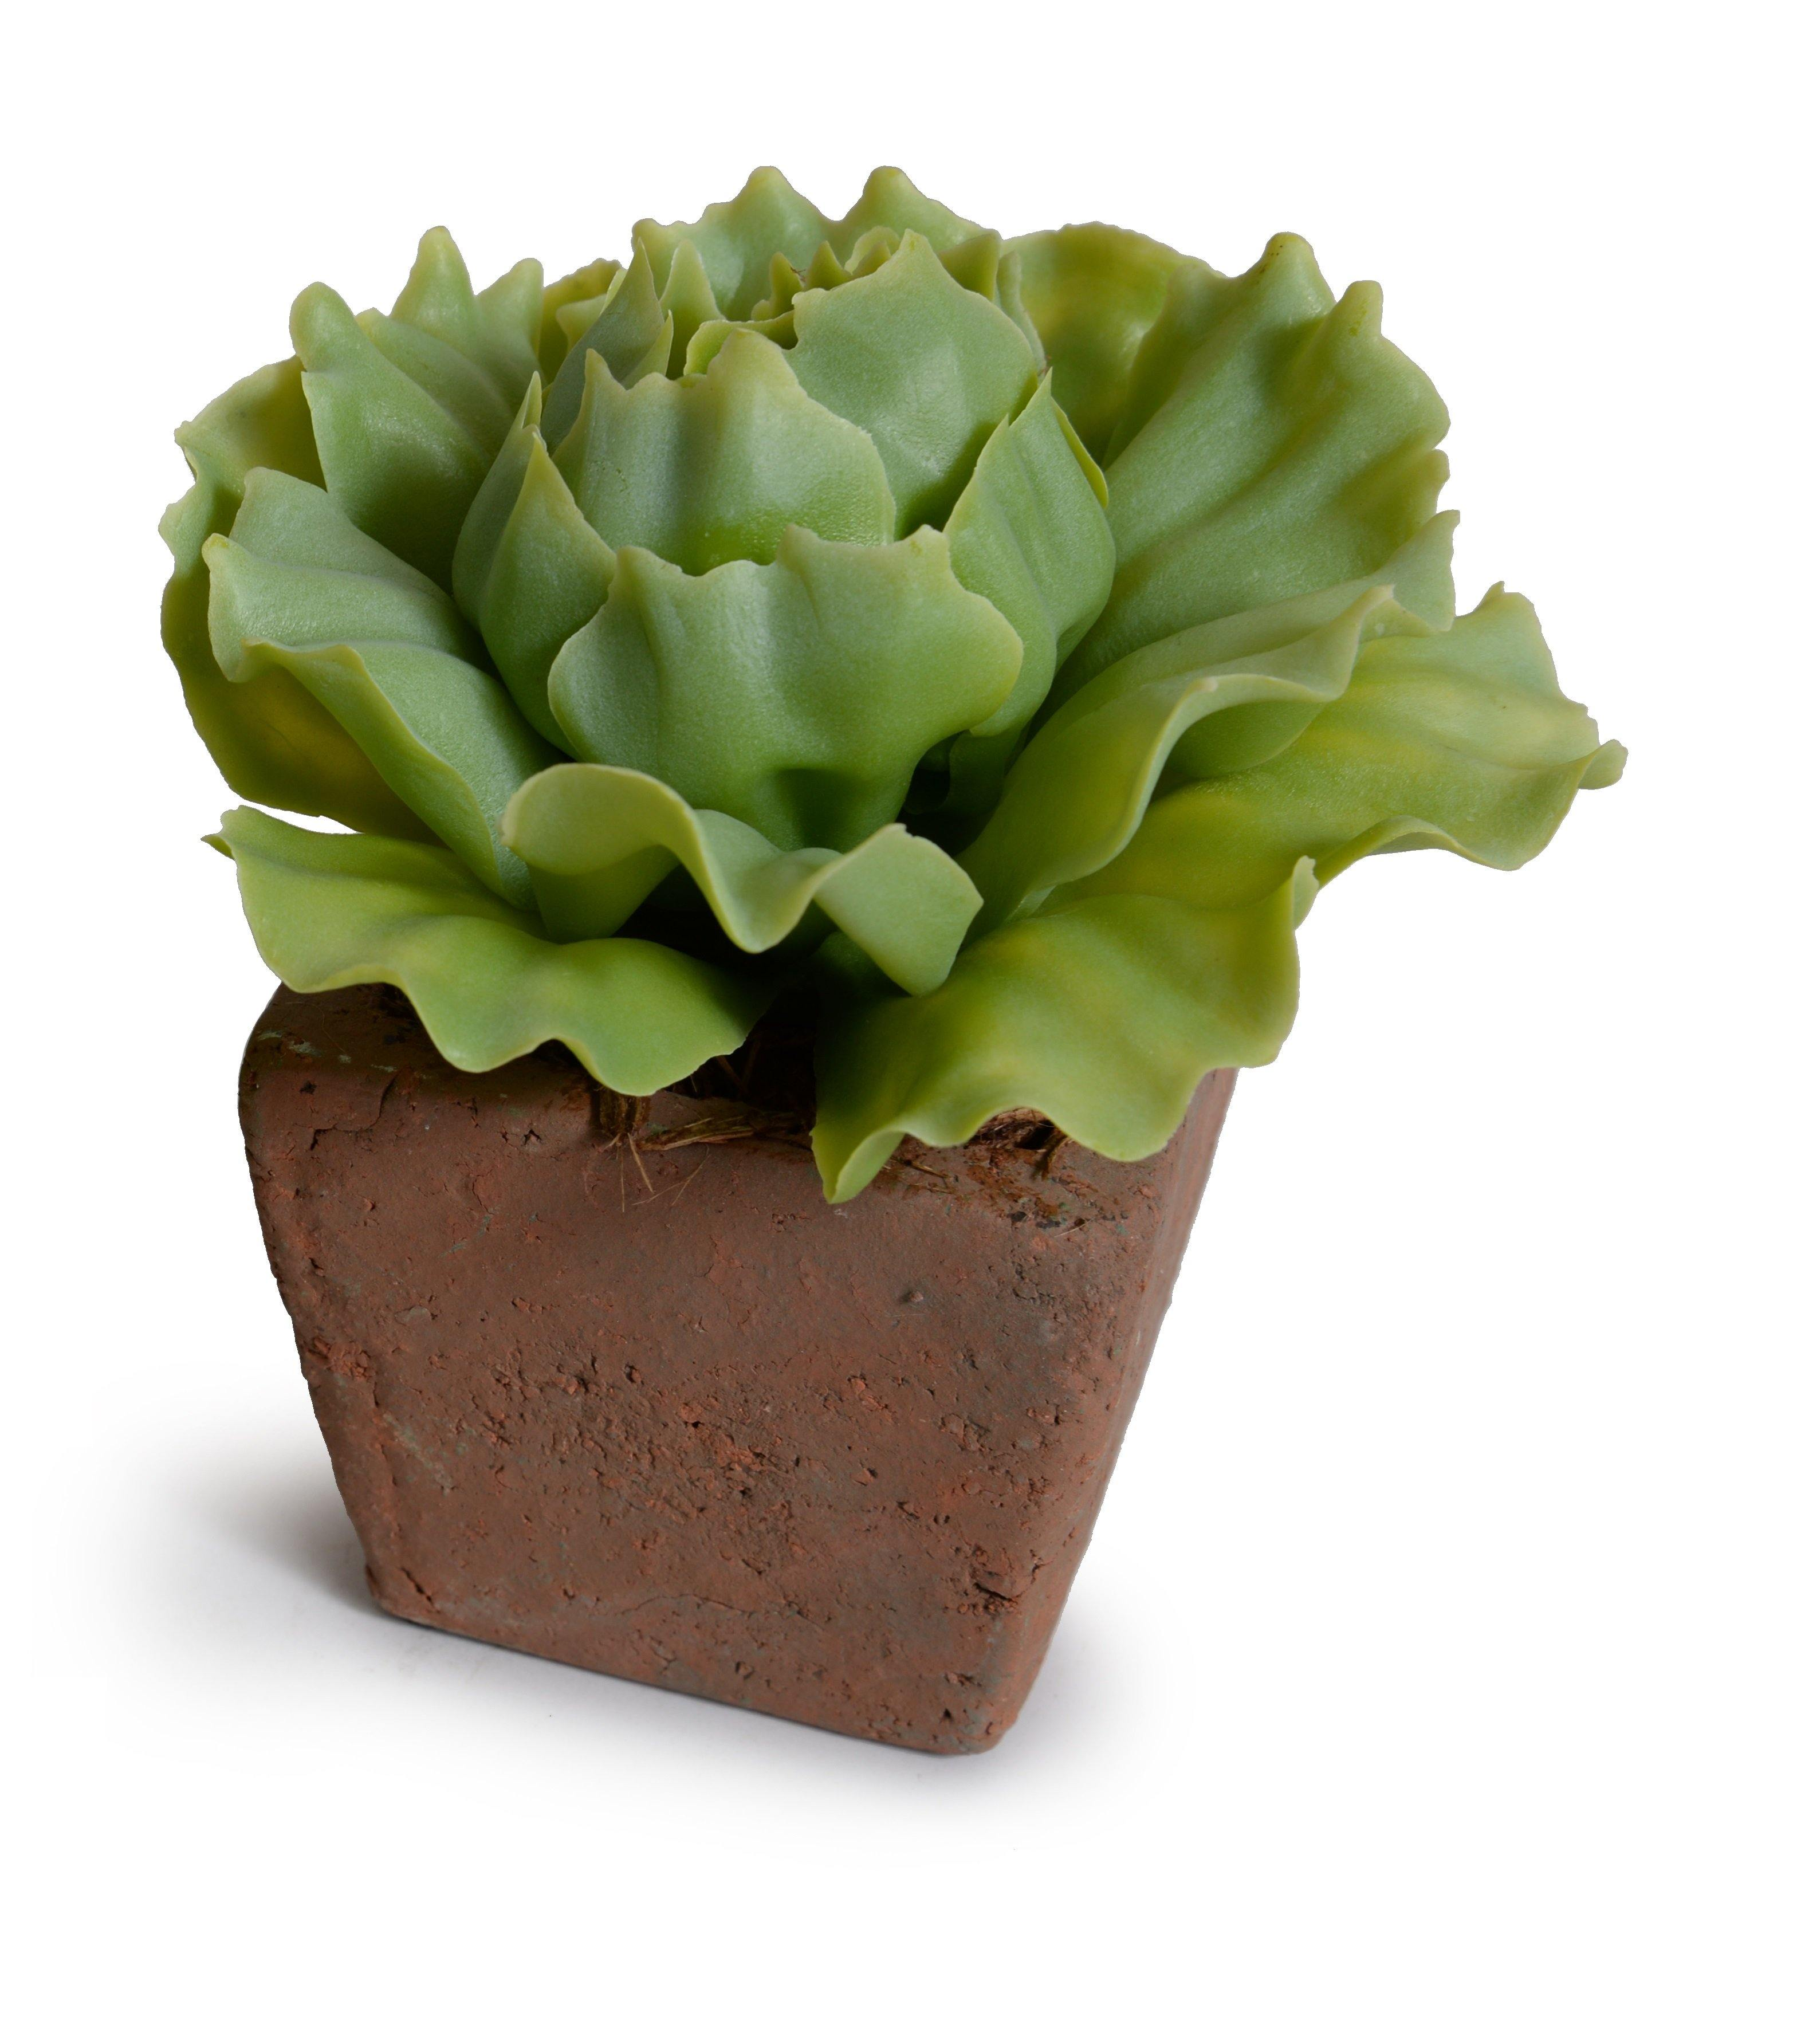 Cabbage Succulent in Rustic Terracotta Cube - Light Green